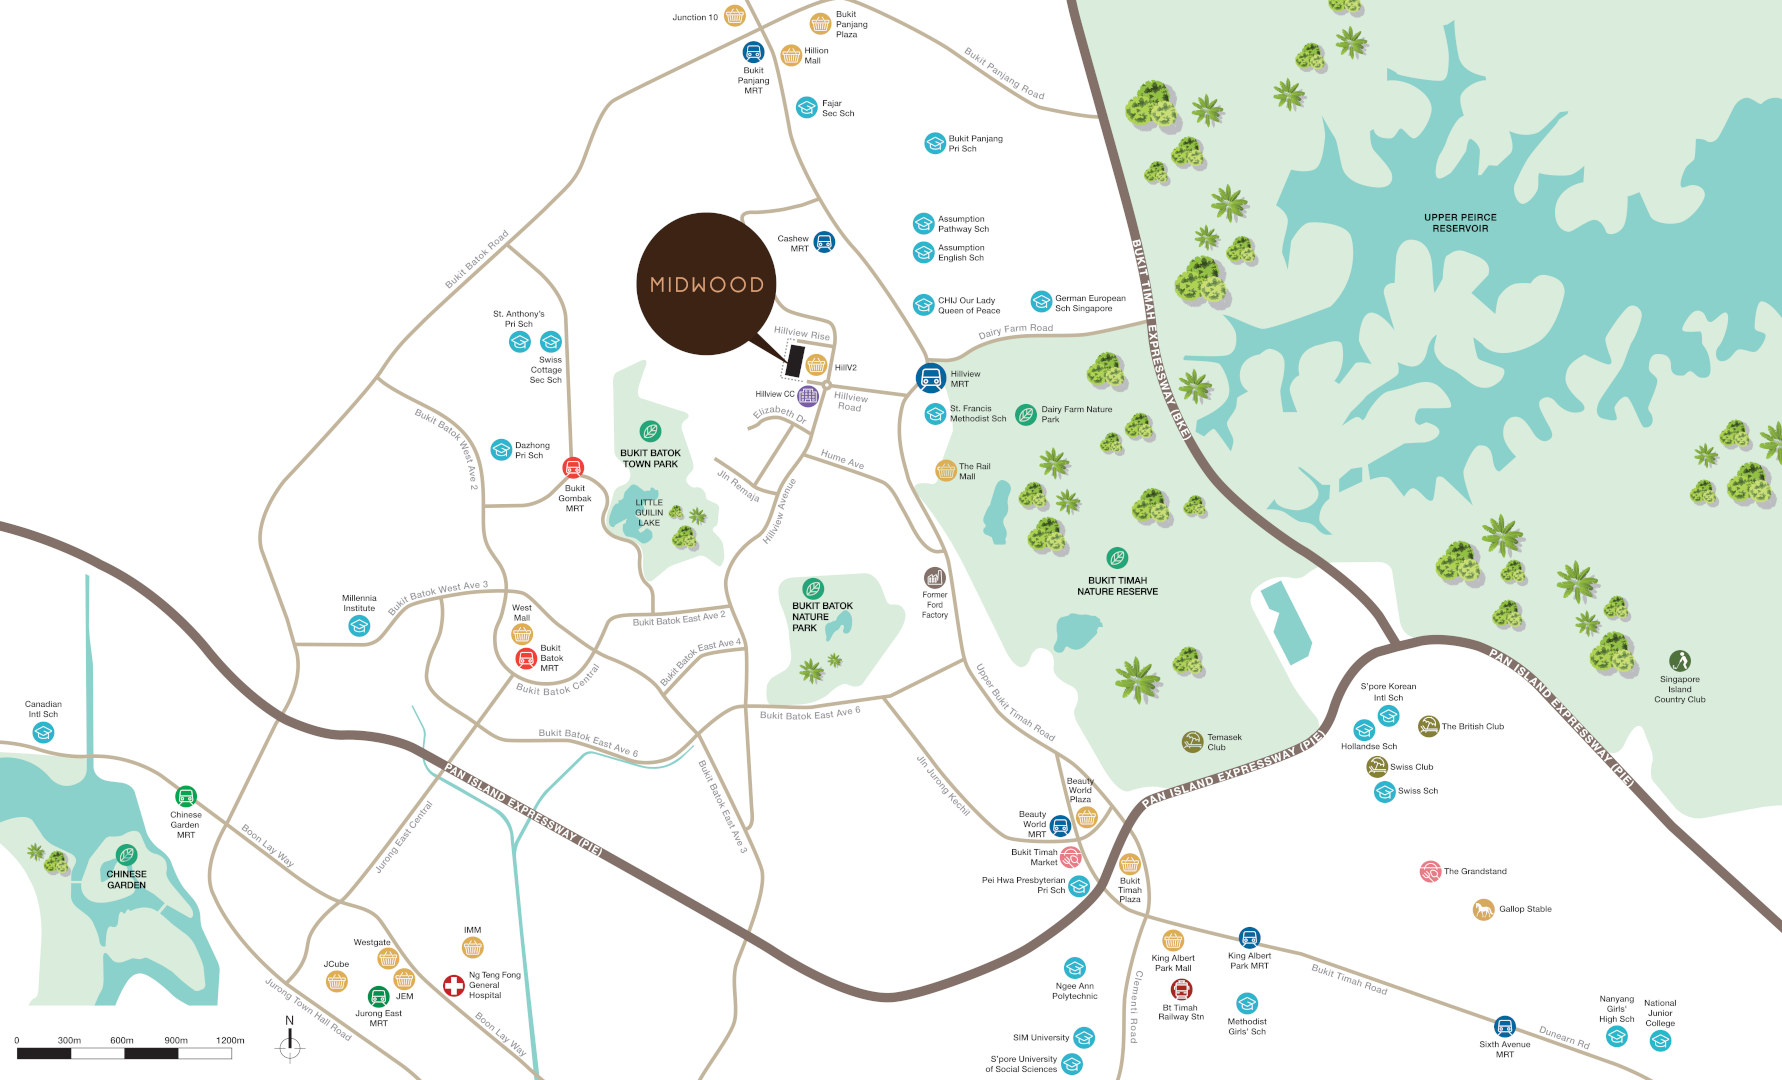 The Midwood Location Map